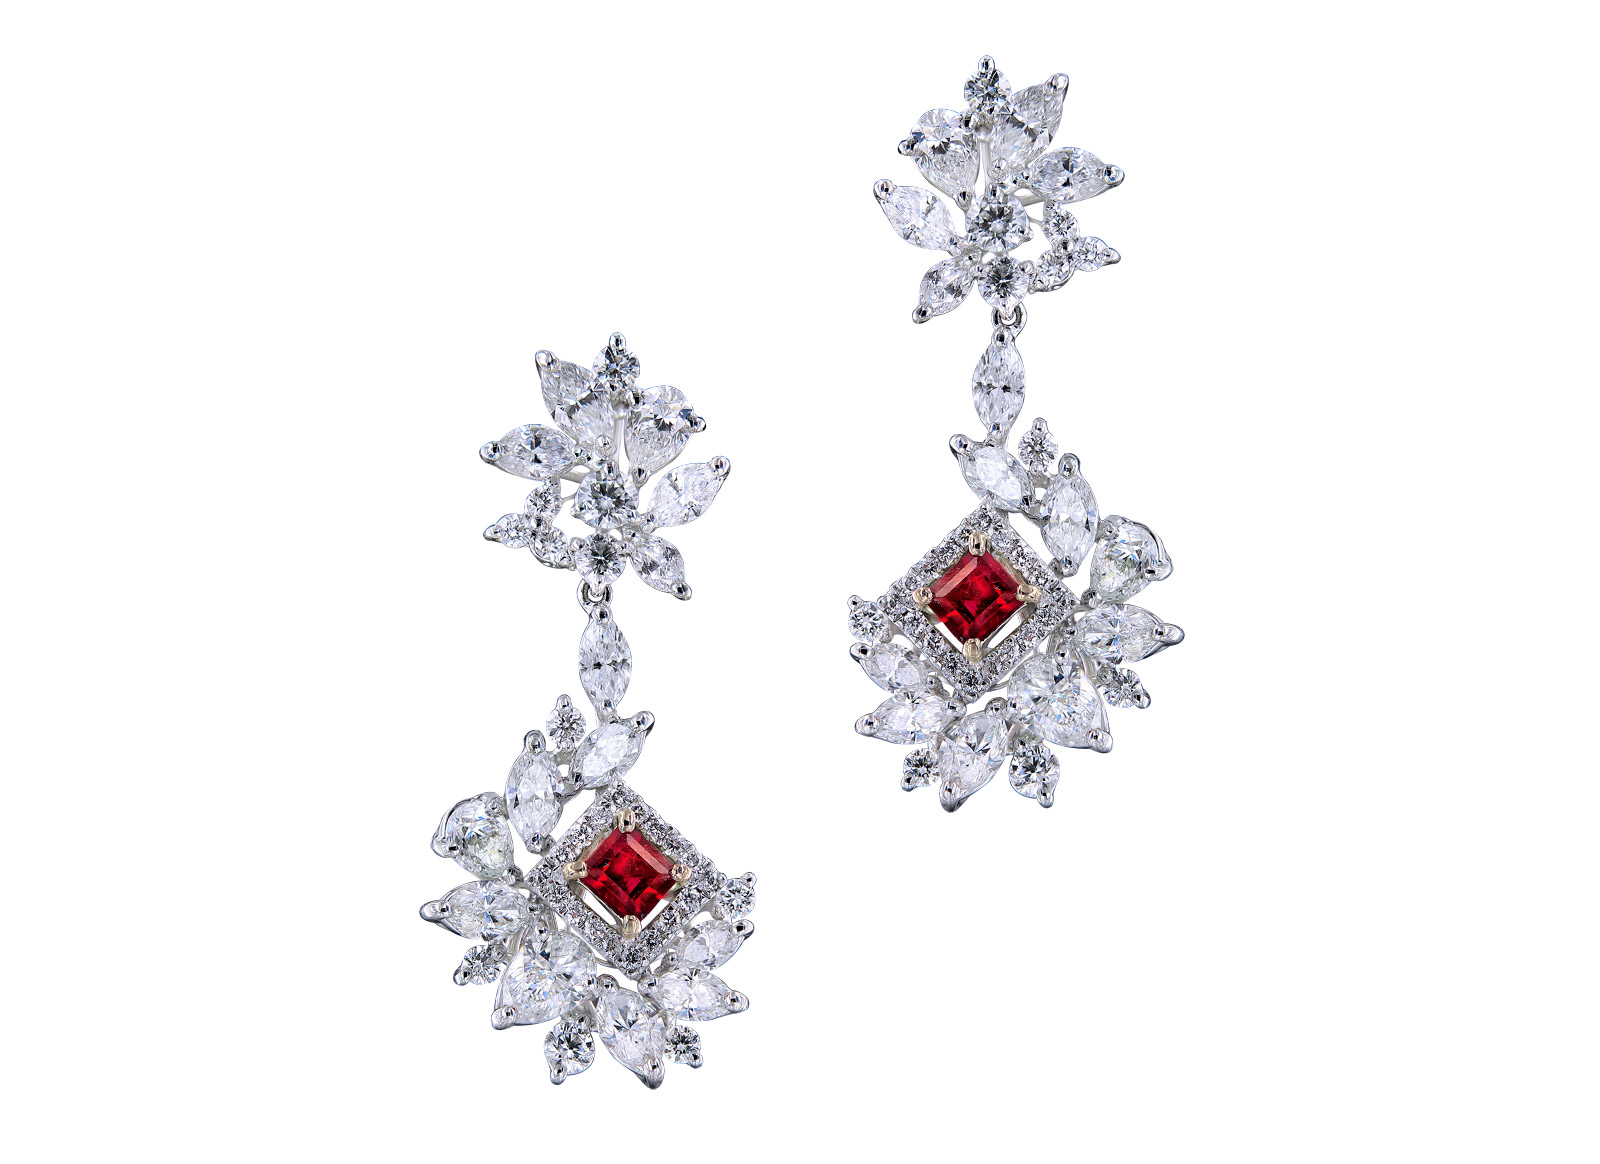 Caratell 0.41ct Bixbite / Red beryl and 4.01ct Diamond drop earrings from 'Sun Ray' collection